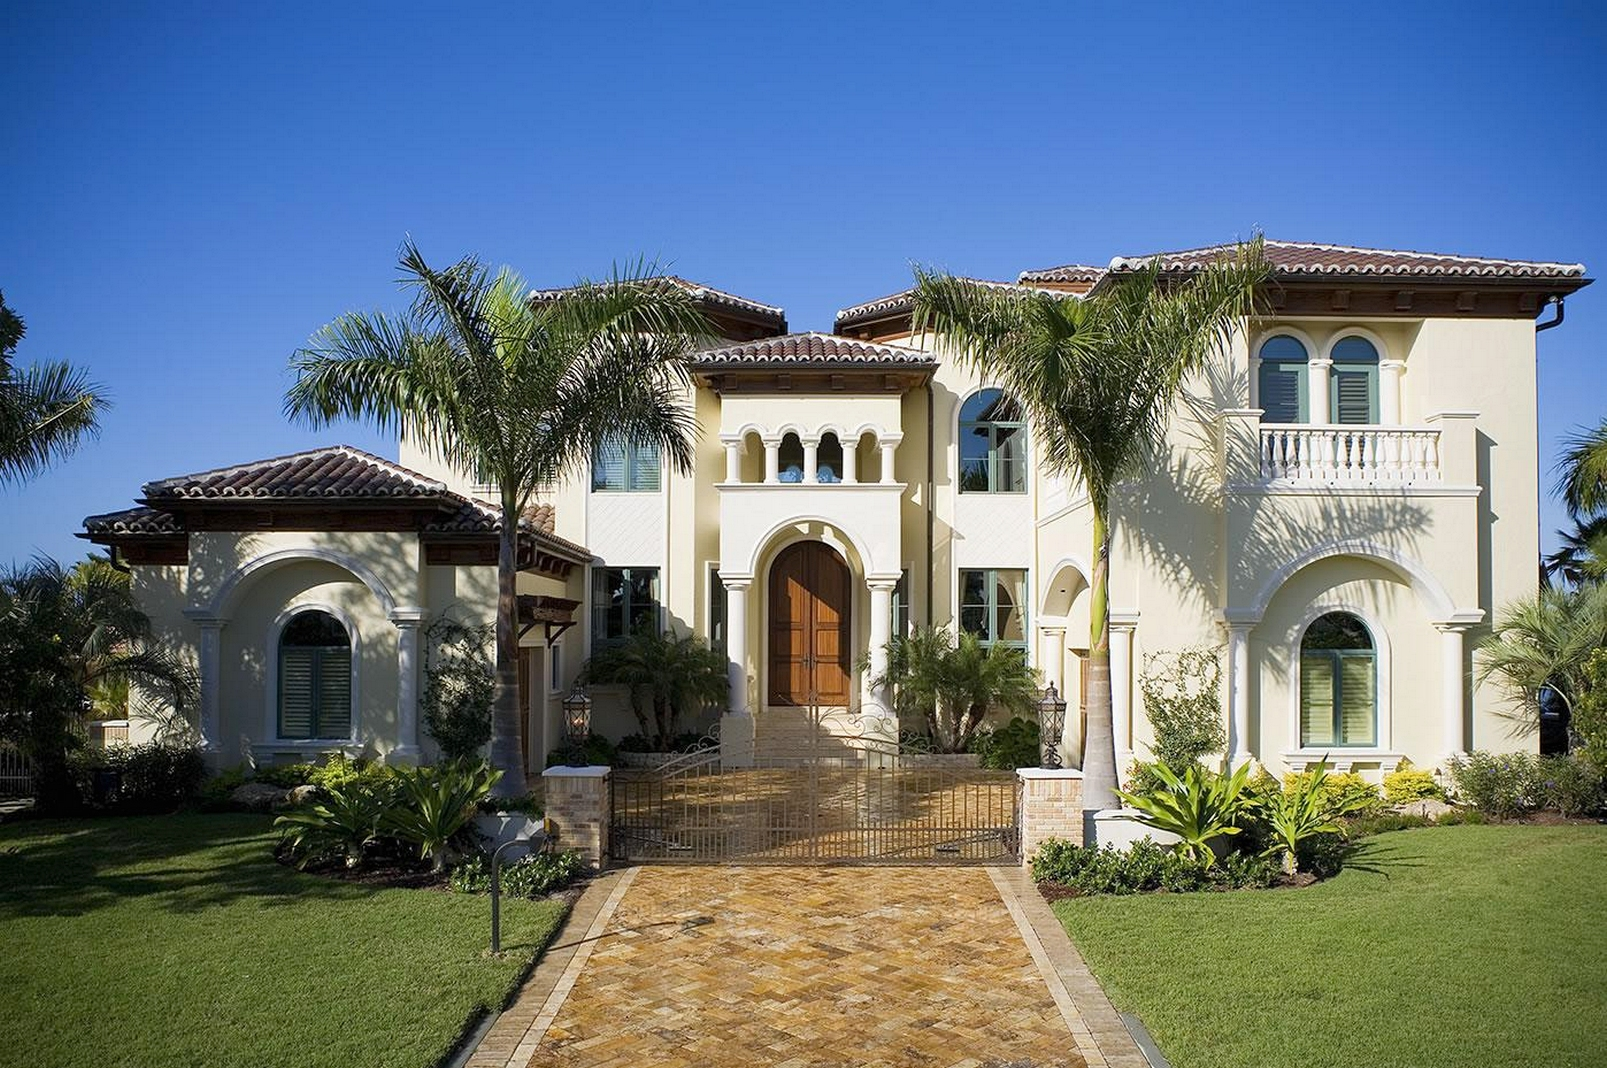 Mediterranean Style Homes Design Ideas | ArchitectureIn